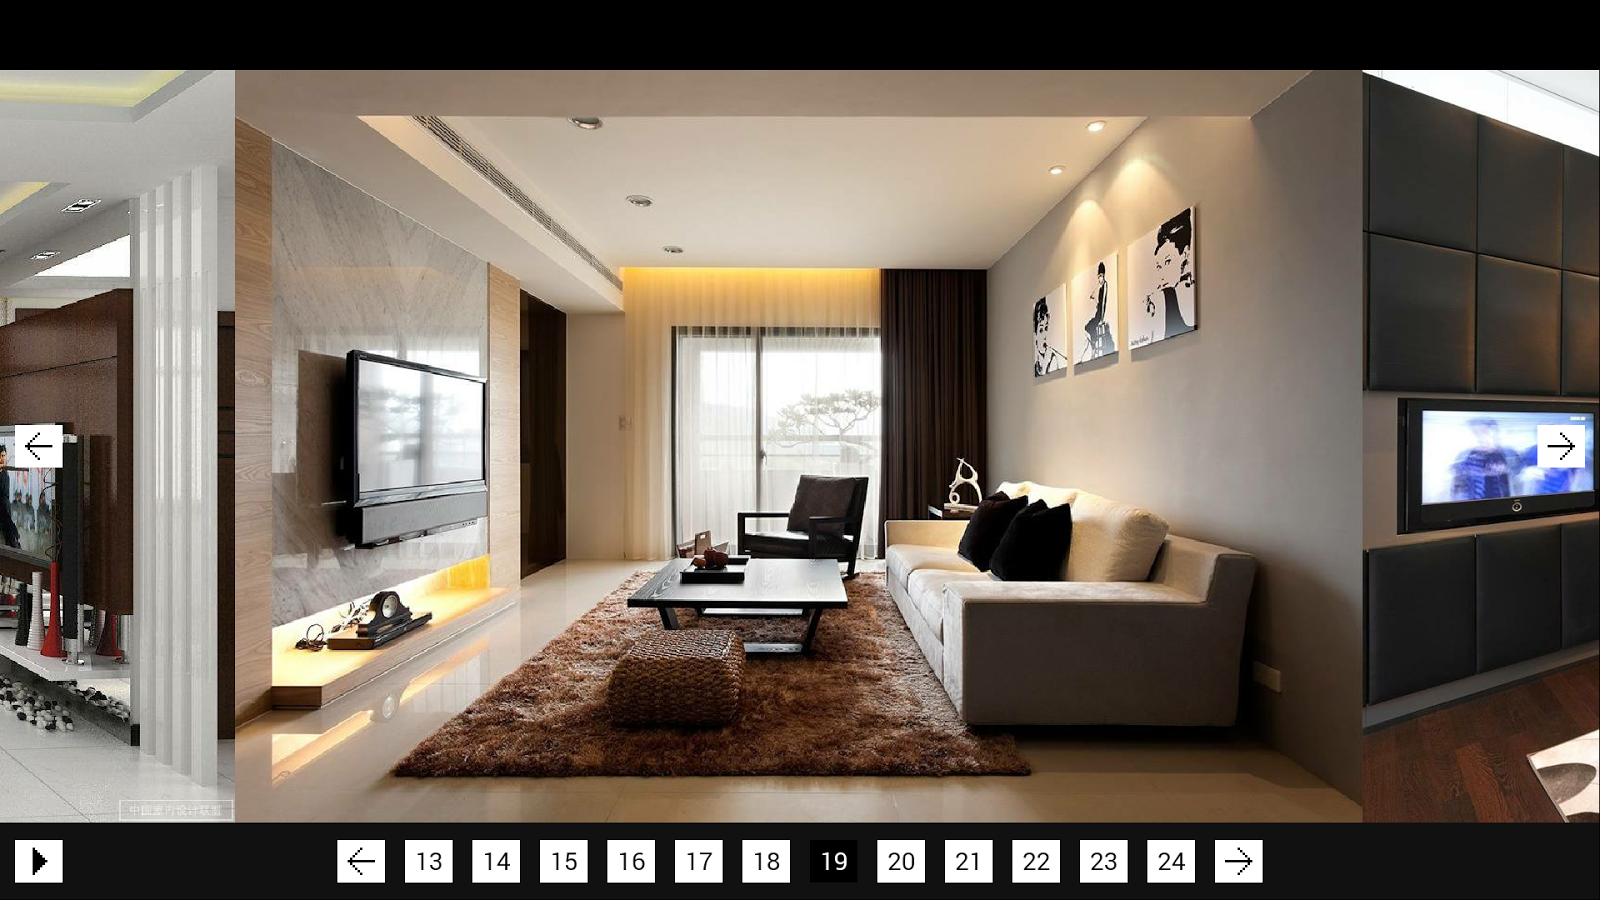 Home interior design android apps on google play for Interior design photos